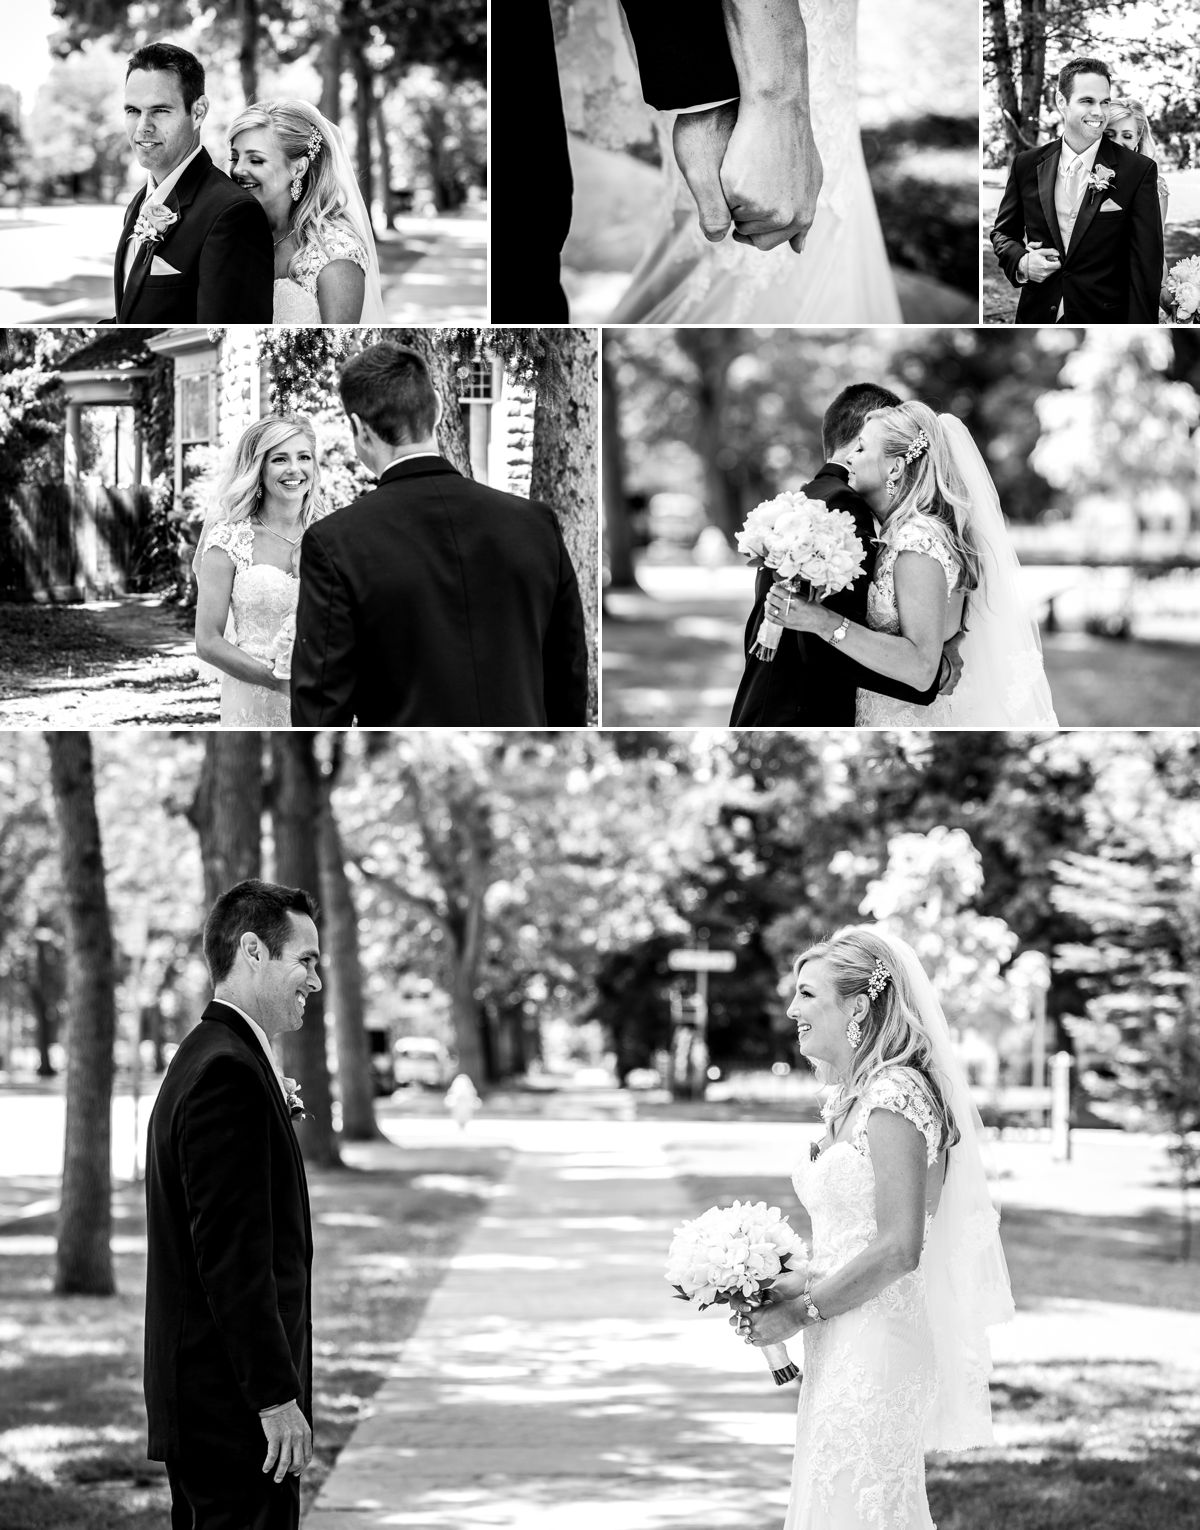 Nothing better than a bride crying before seeing her groom!!